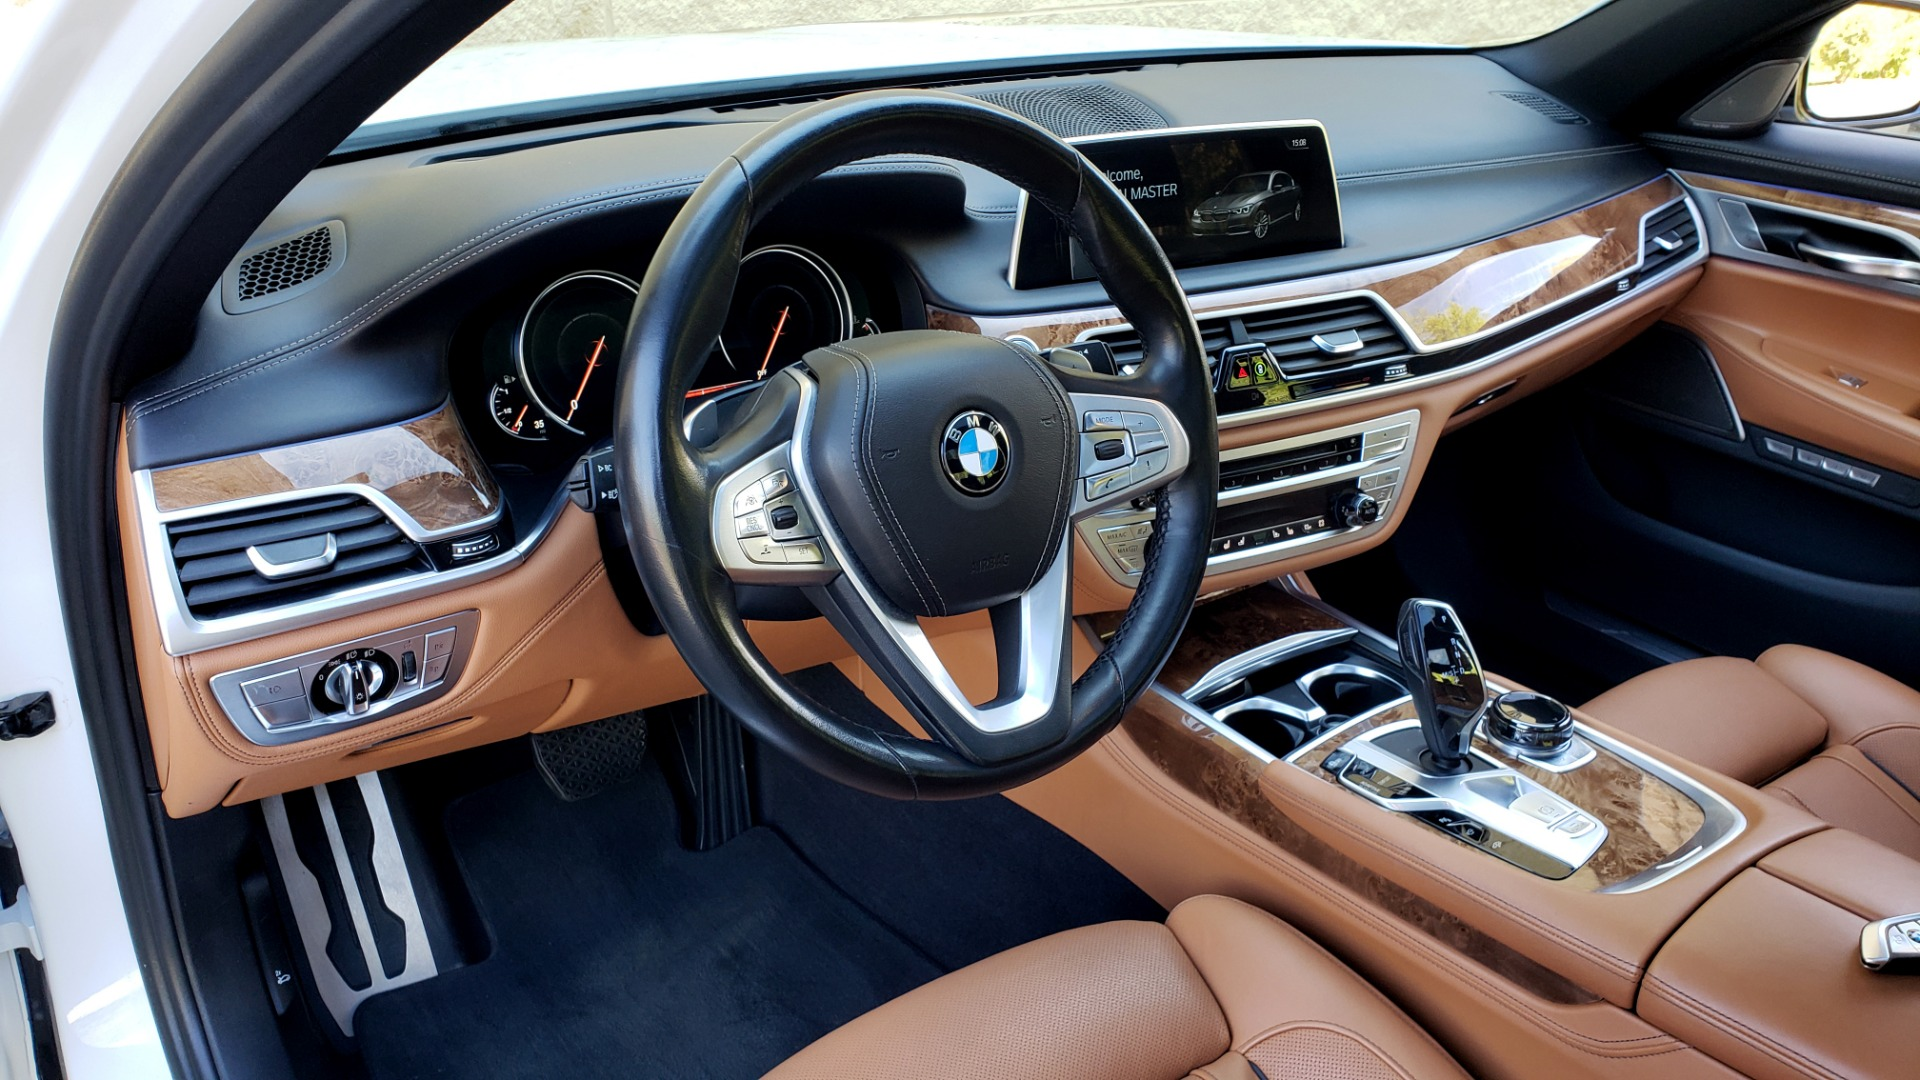 Used 2017 BMW 7 SERIES 750I XDRIVE / M-SPORT / EXEC PKG / DRVR ASST PLUS II / CLD WTHR for sale $48,495 at Formula Imports in Charlotte NC 28227 39